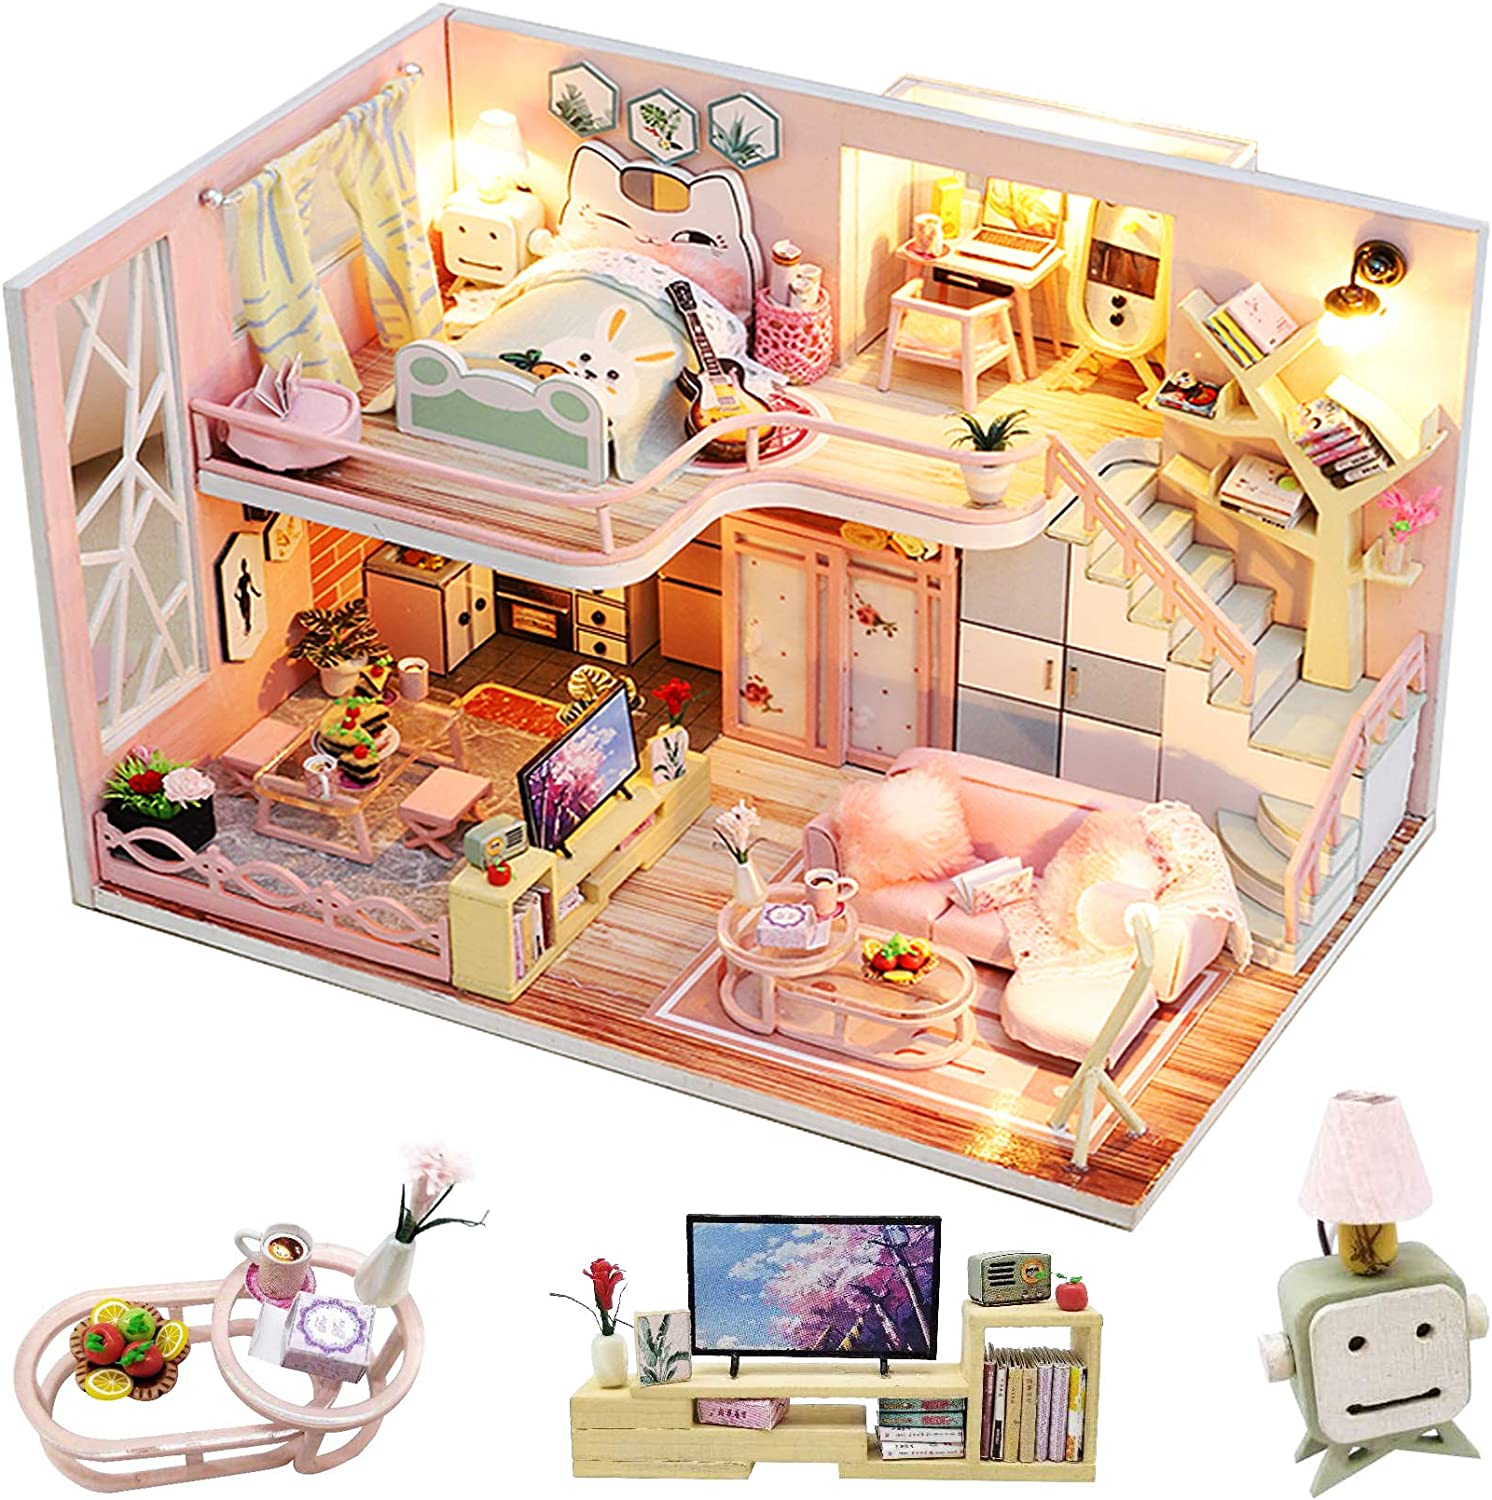 Spilay DIY Miniature Dollhouse Wooden Furniture Kit,Handmade Mini Modern Model Plus with Dust Cover & Music Box ,1:24 Scale Creative Doll House Toys for Adult Teenager Idea Gift